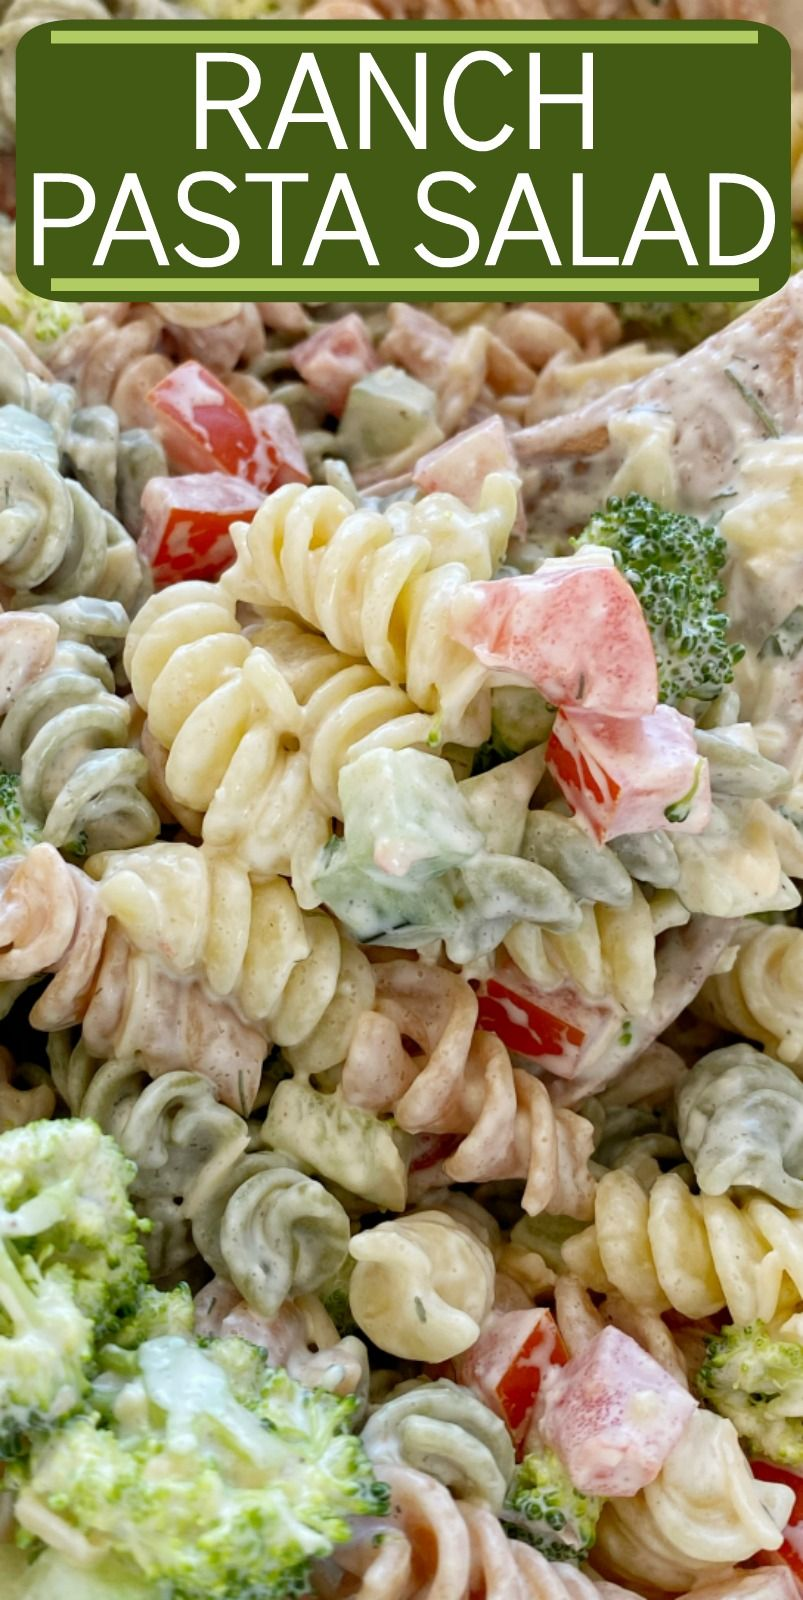 Pasta Salad Recipe Ranch Pasta Salad Is The Best Pasta Salad Side Dish Rotini Noodles Cucumber Tomato Broccoli Parmesan Cheese Wit In 2020 Salad Side Dish Recipes